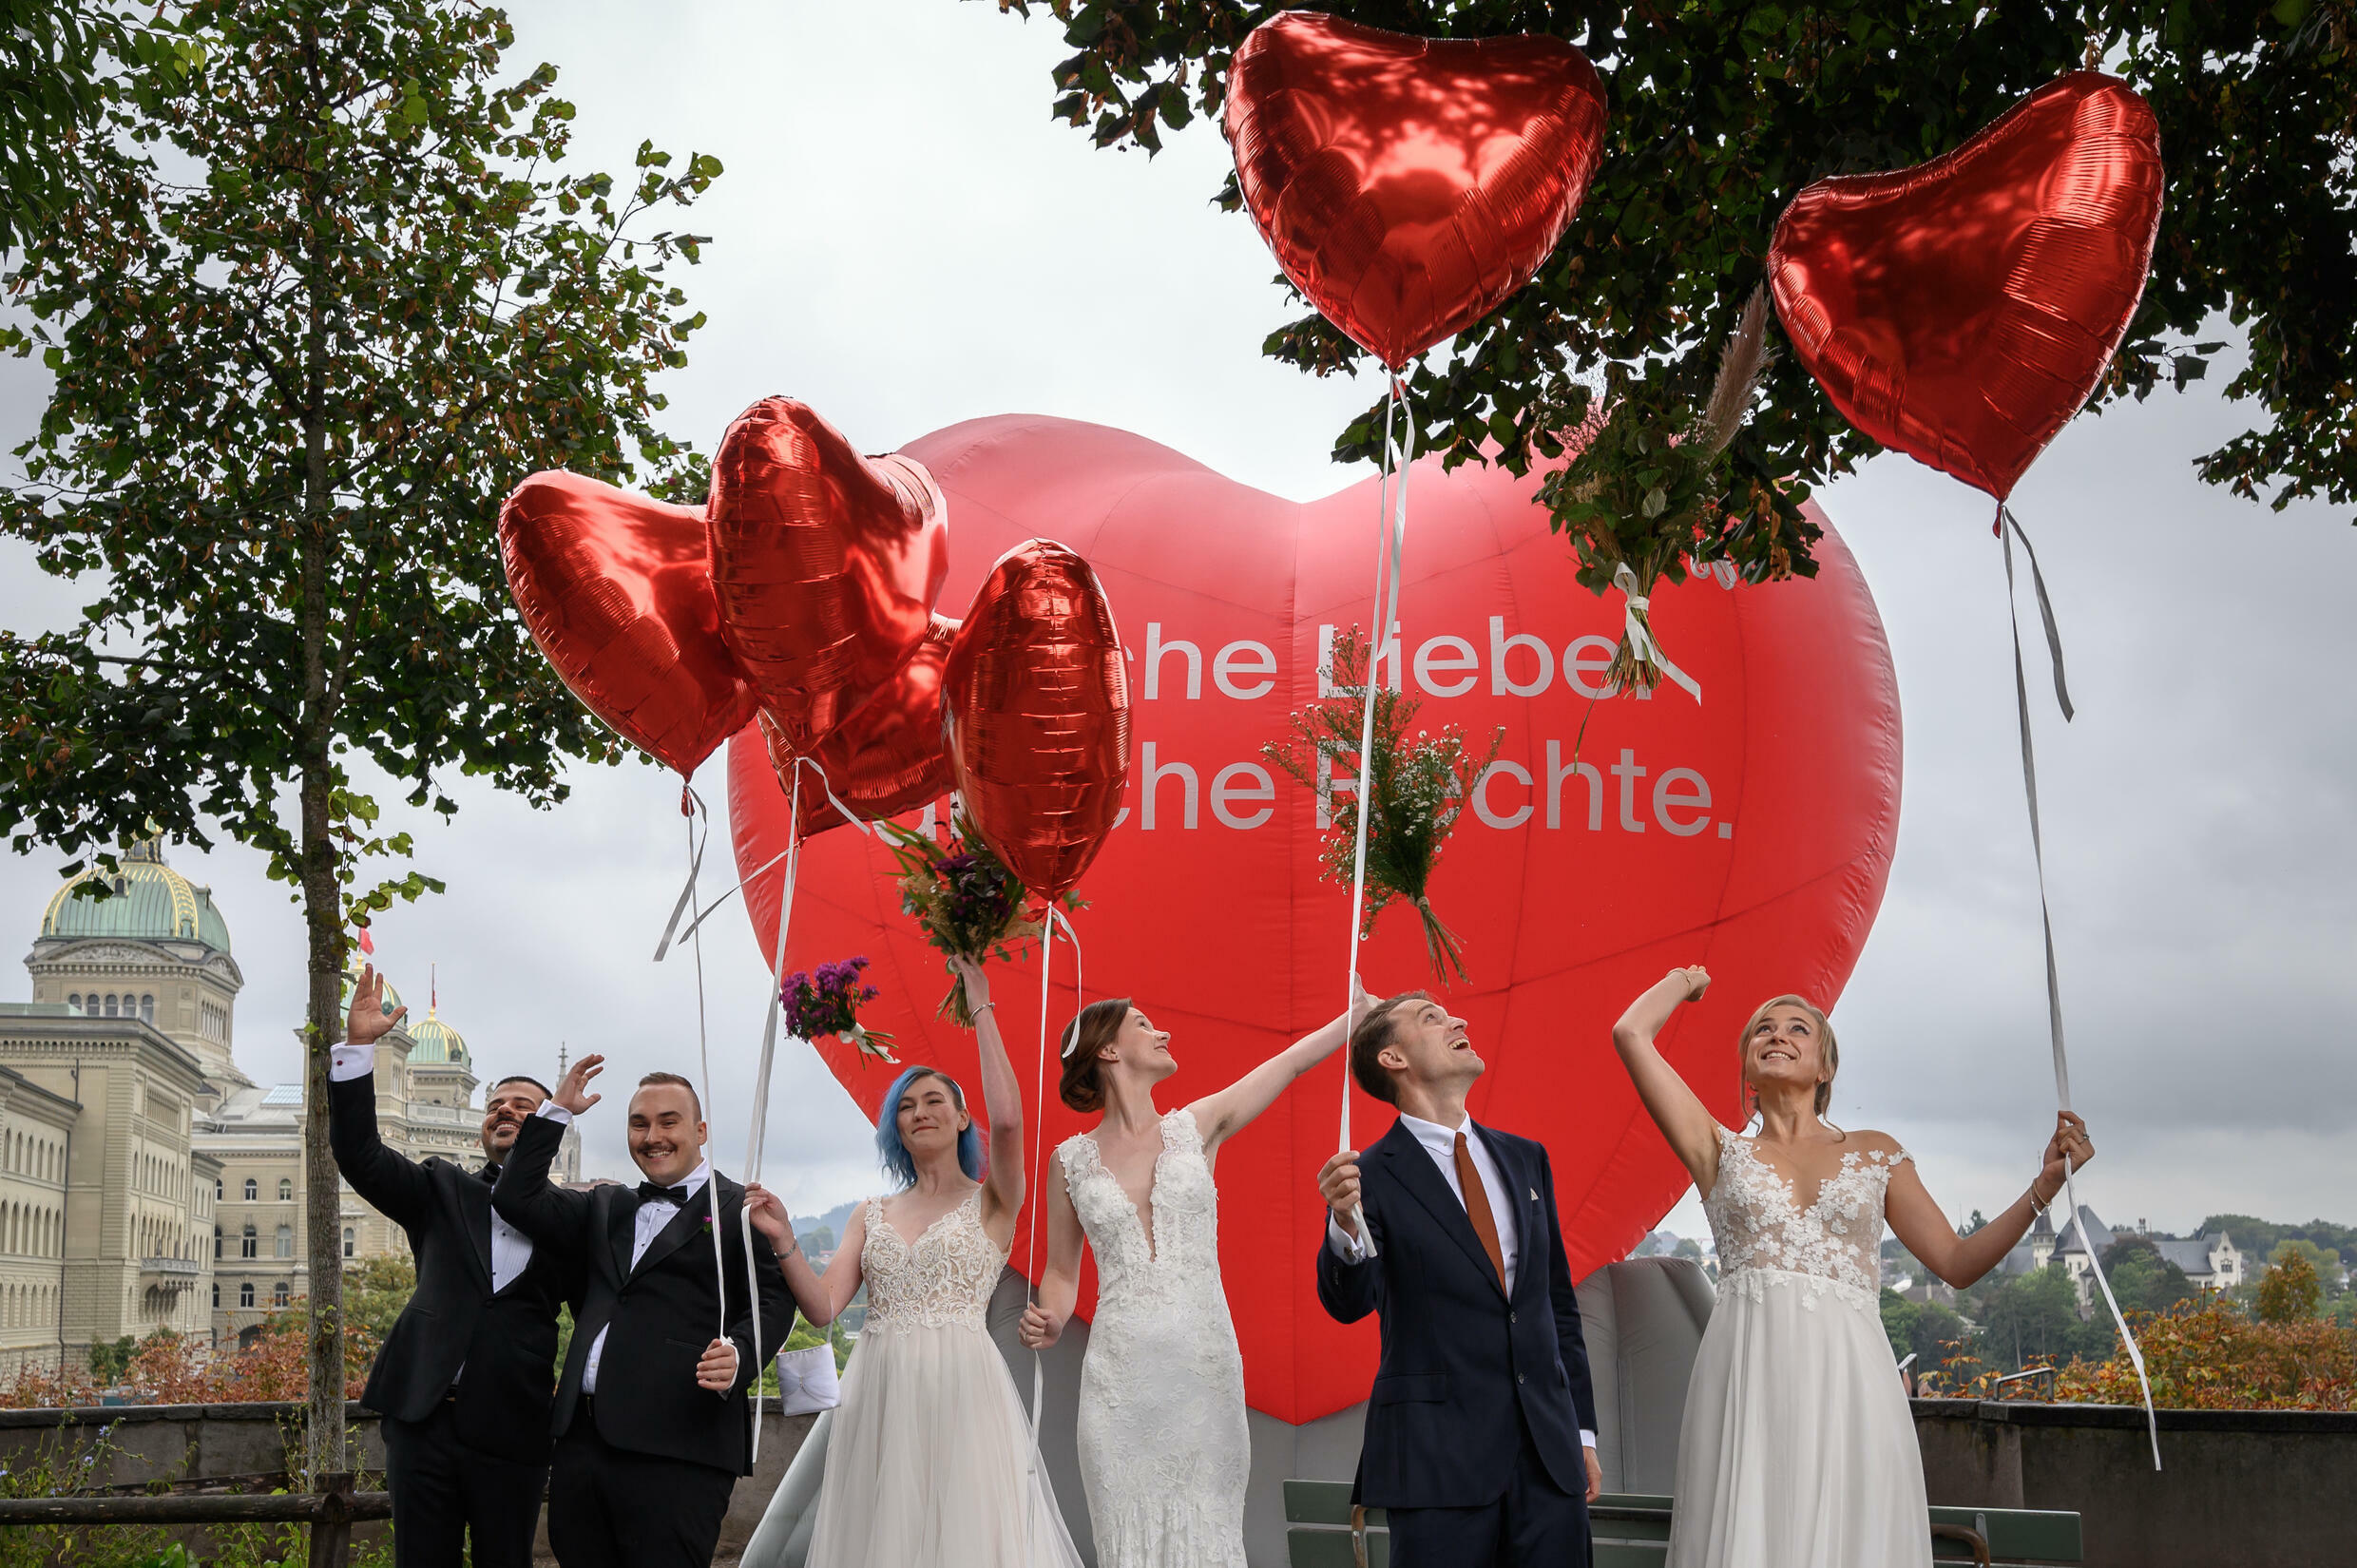 Swiss celebrate after voters approved same-sex marriage in a referendum